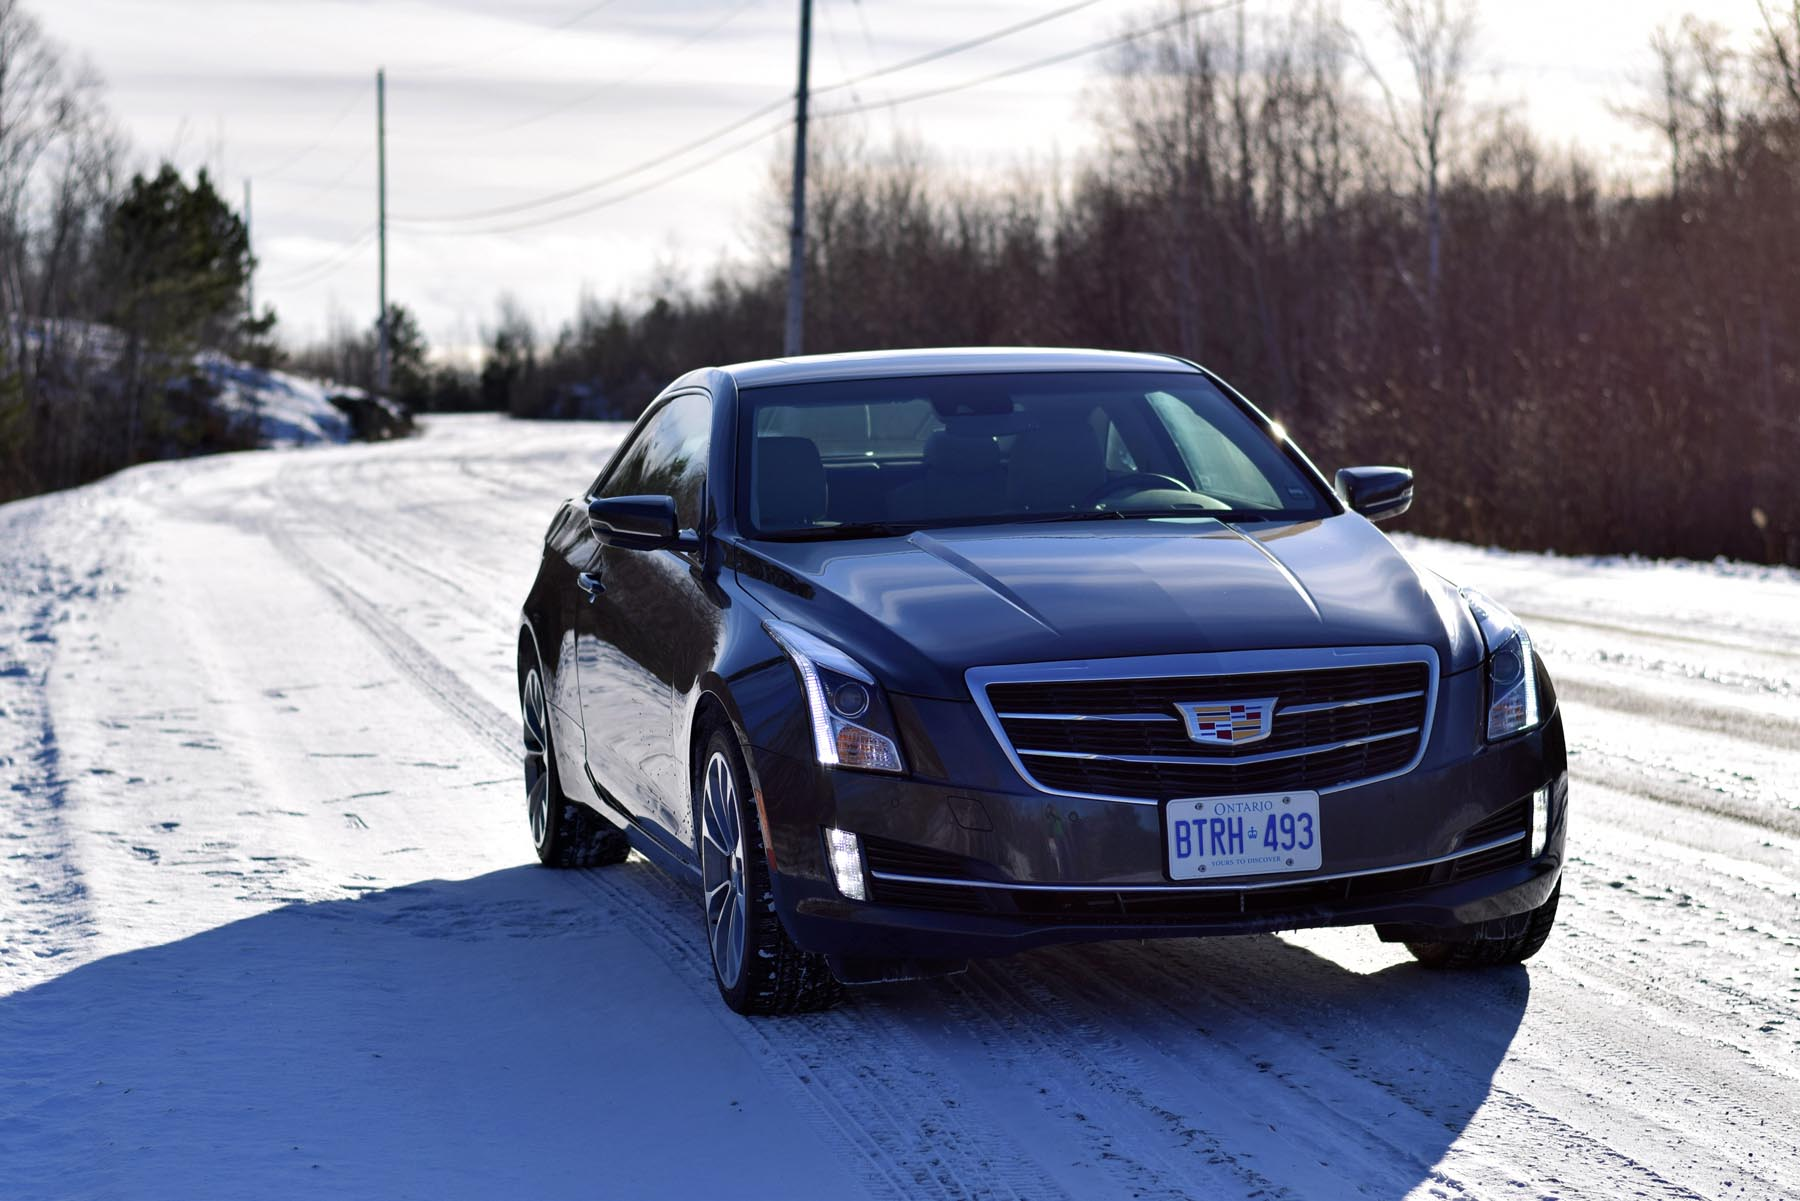 2015 Cadillac ATS 2.0L Turbo Performance AWD Coupe - Autos.ca